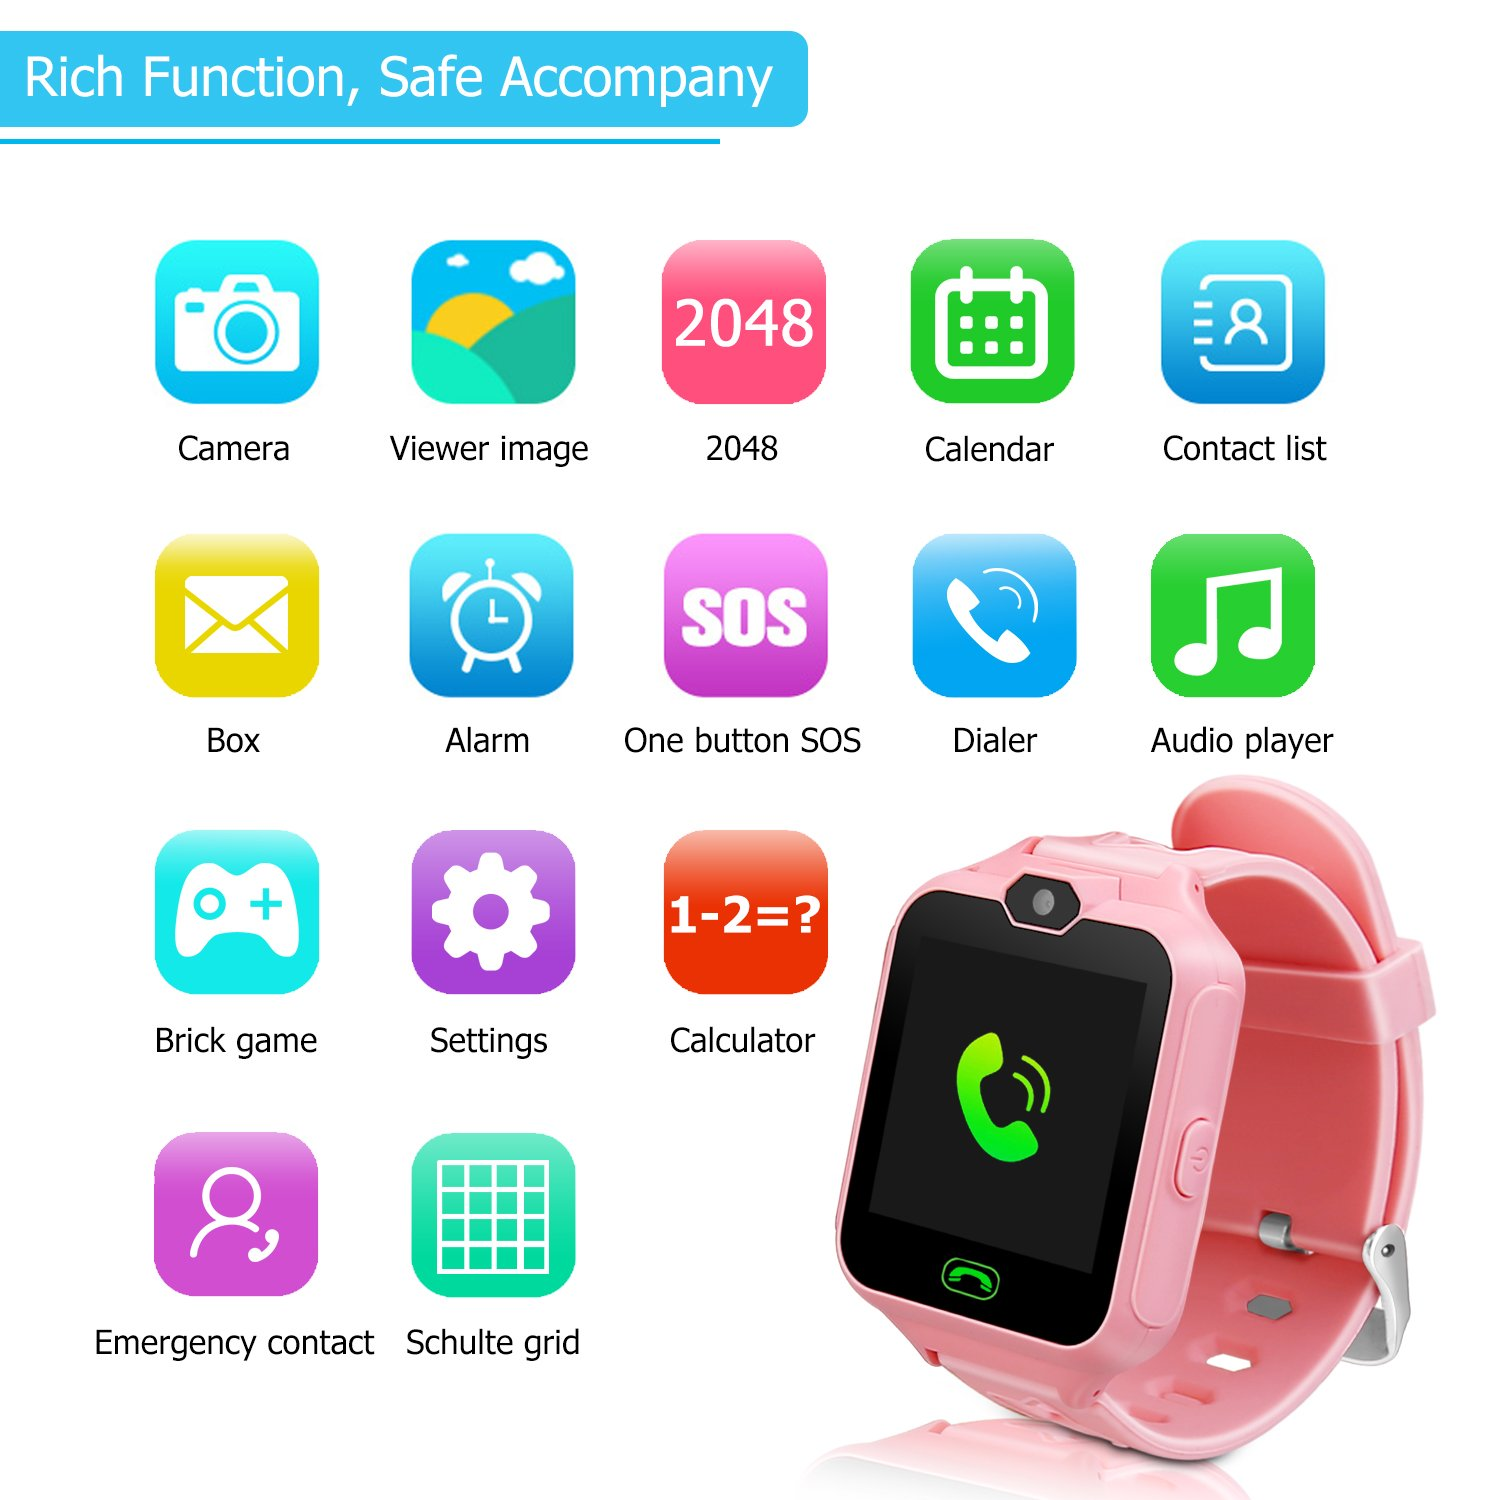 Kids Smart Watch Phone,Unlocked Waterproof Smart Phone Watch for Girls Boys with Camera Games Touchscreen,Children SOS Cell Phone Watch with SIM and SD Slot,Perfect Holiday Birthday Gifts(Pink) by MIMLI (Image #7)